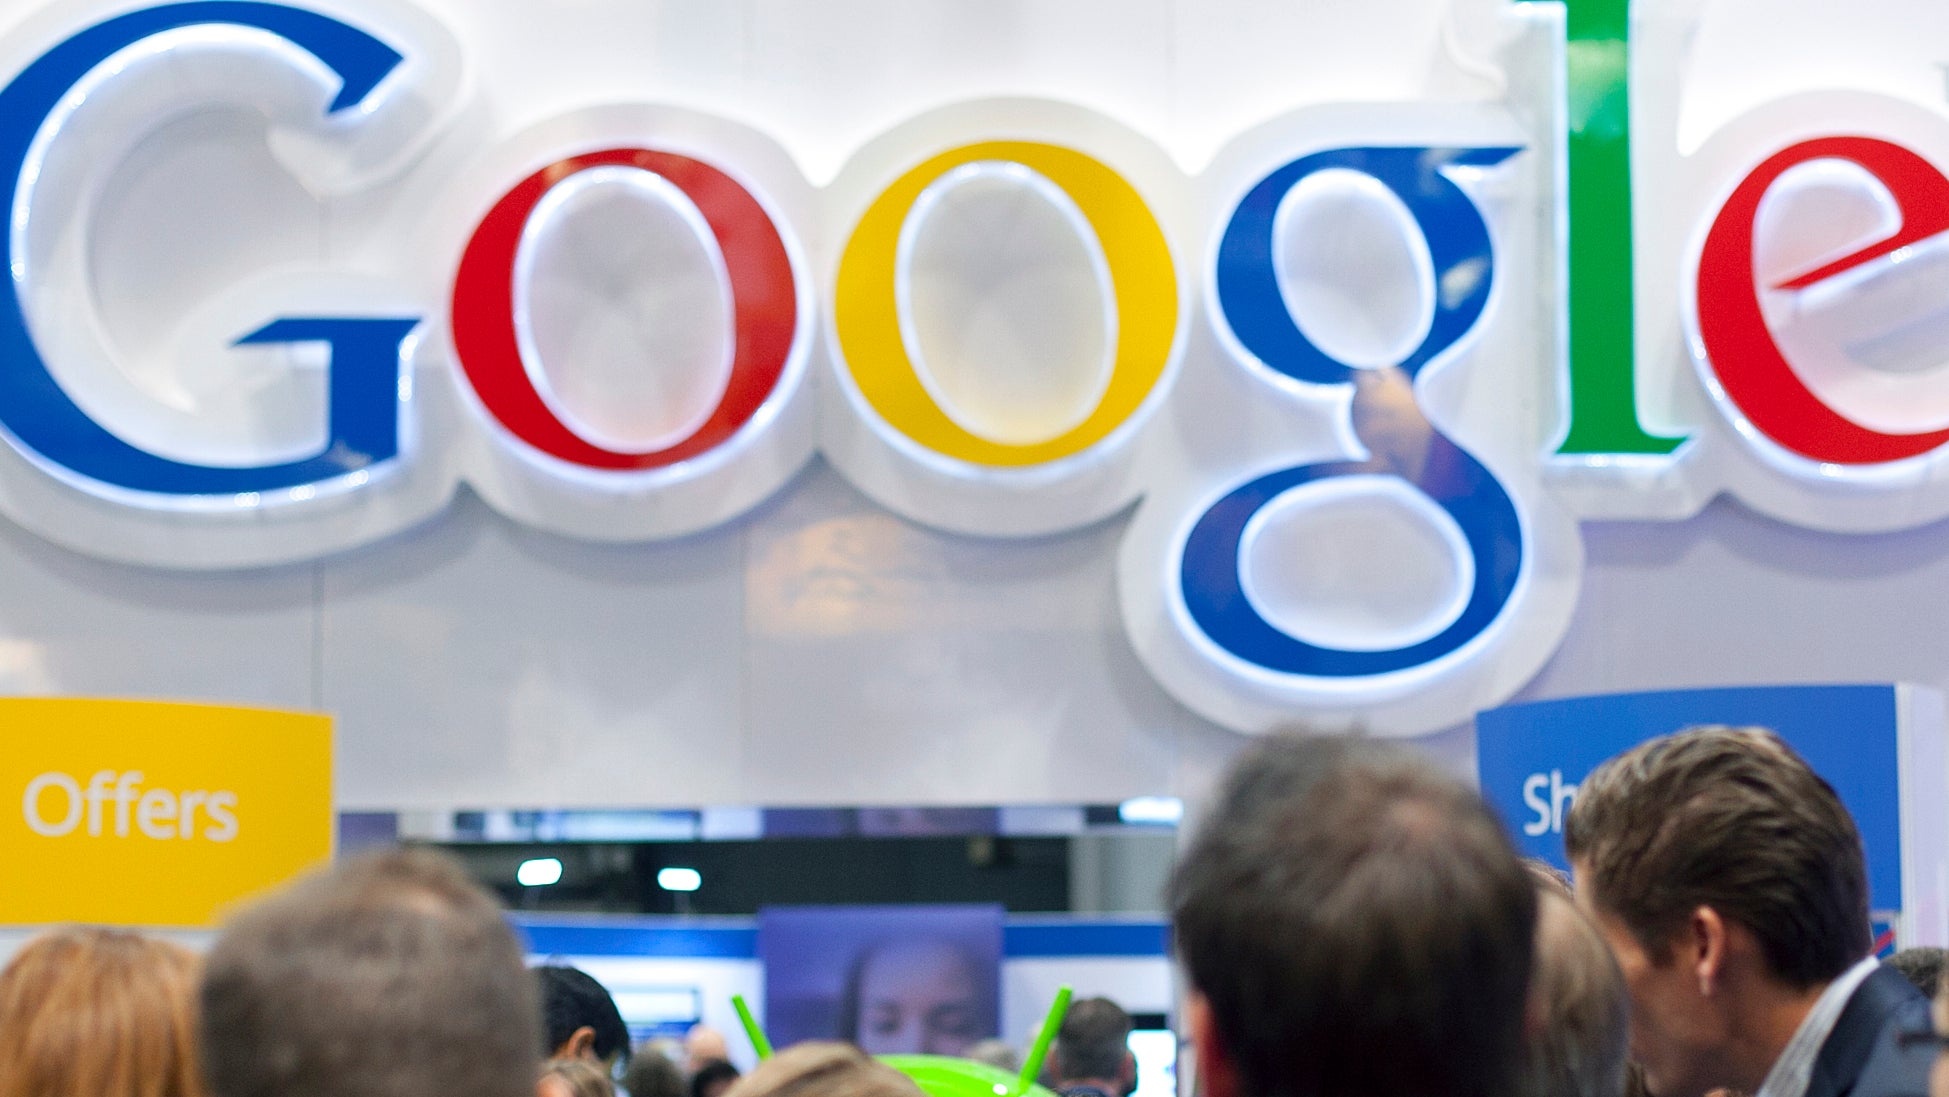 Internal Google Docs Warn Not To Gift Contractors Shirts In Case They Start Thinking They're Employees: Report